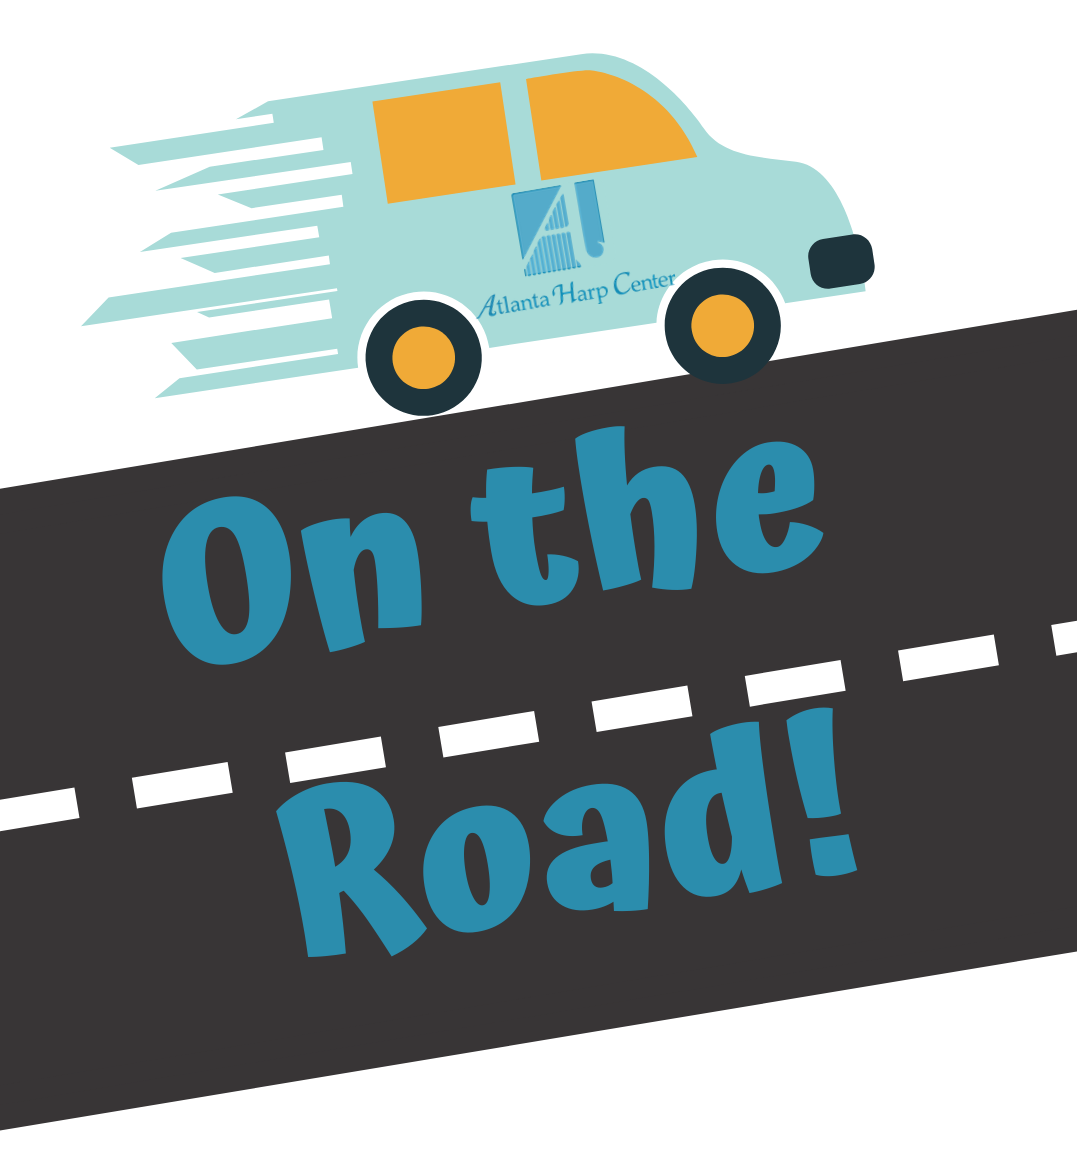 on-the-road-smalerl-no-ahs-logo-.png